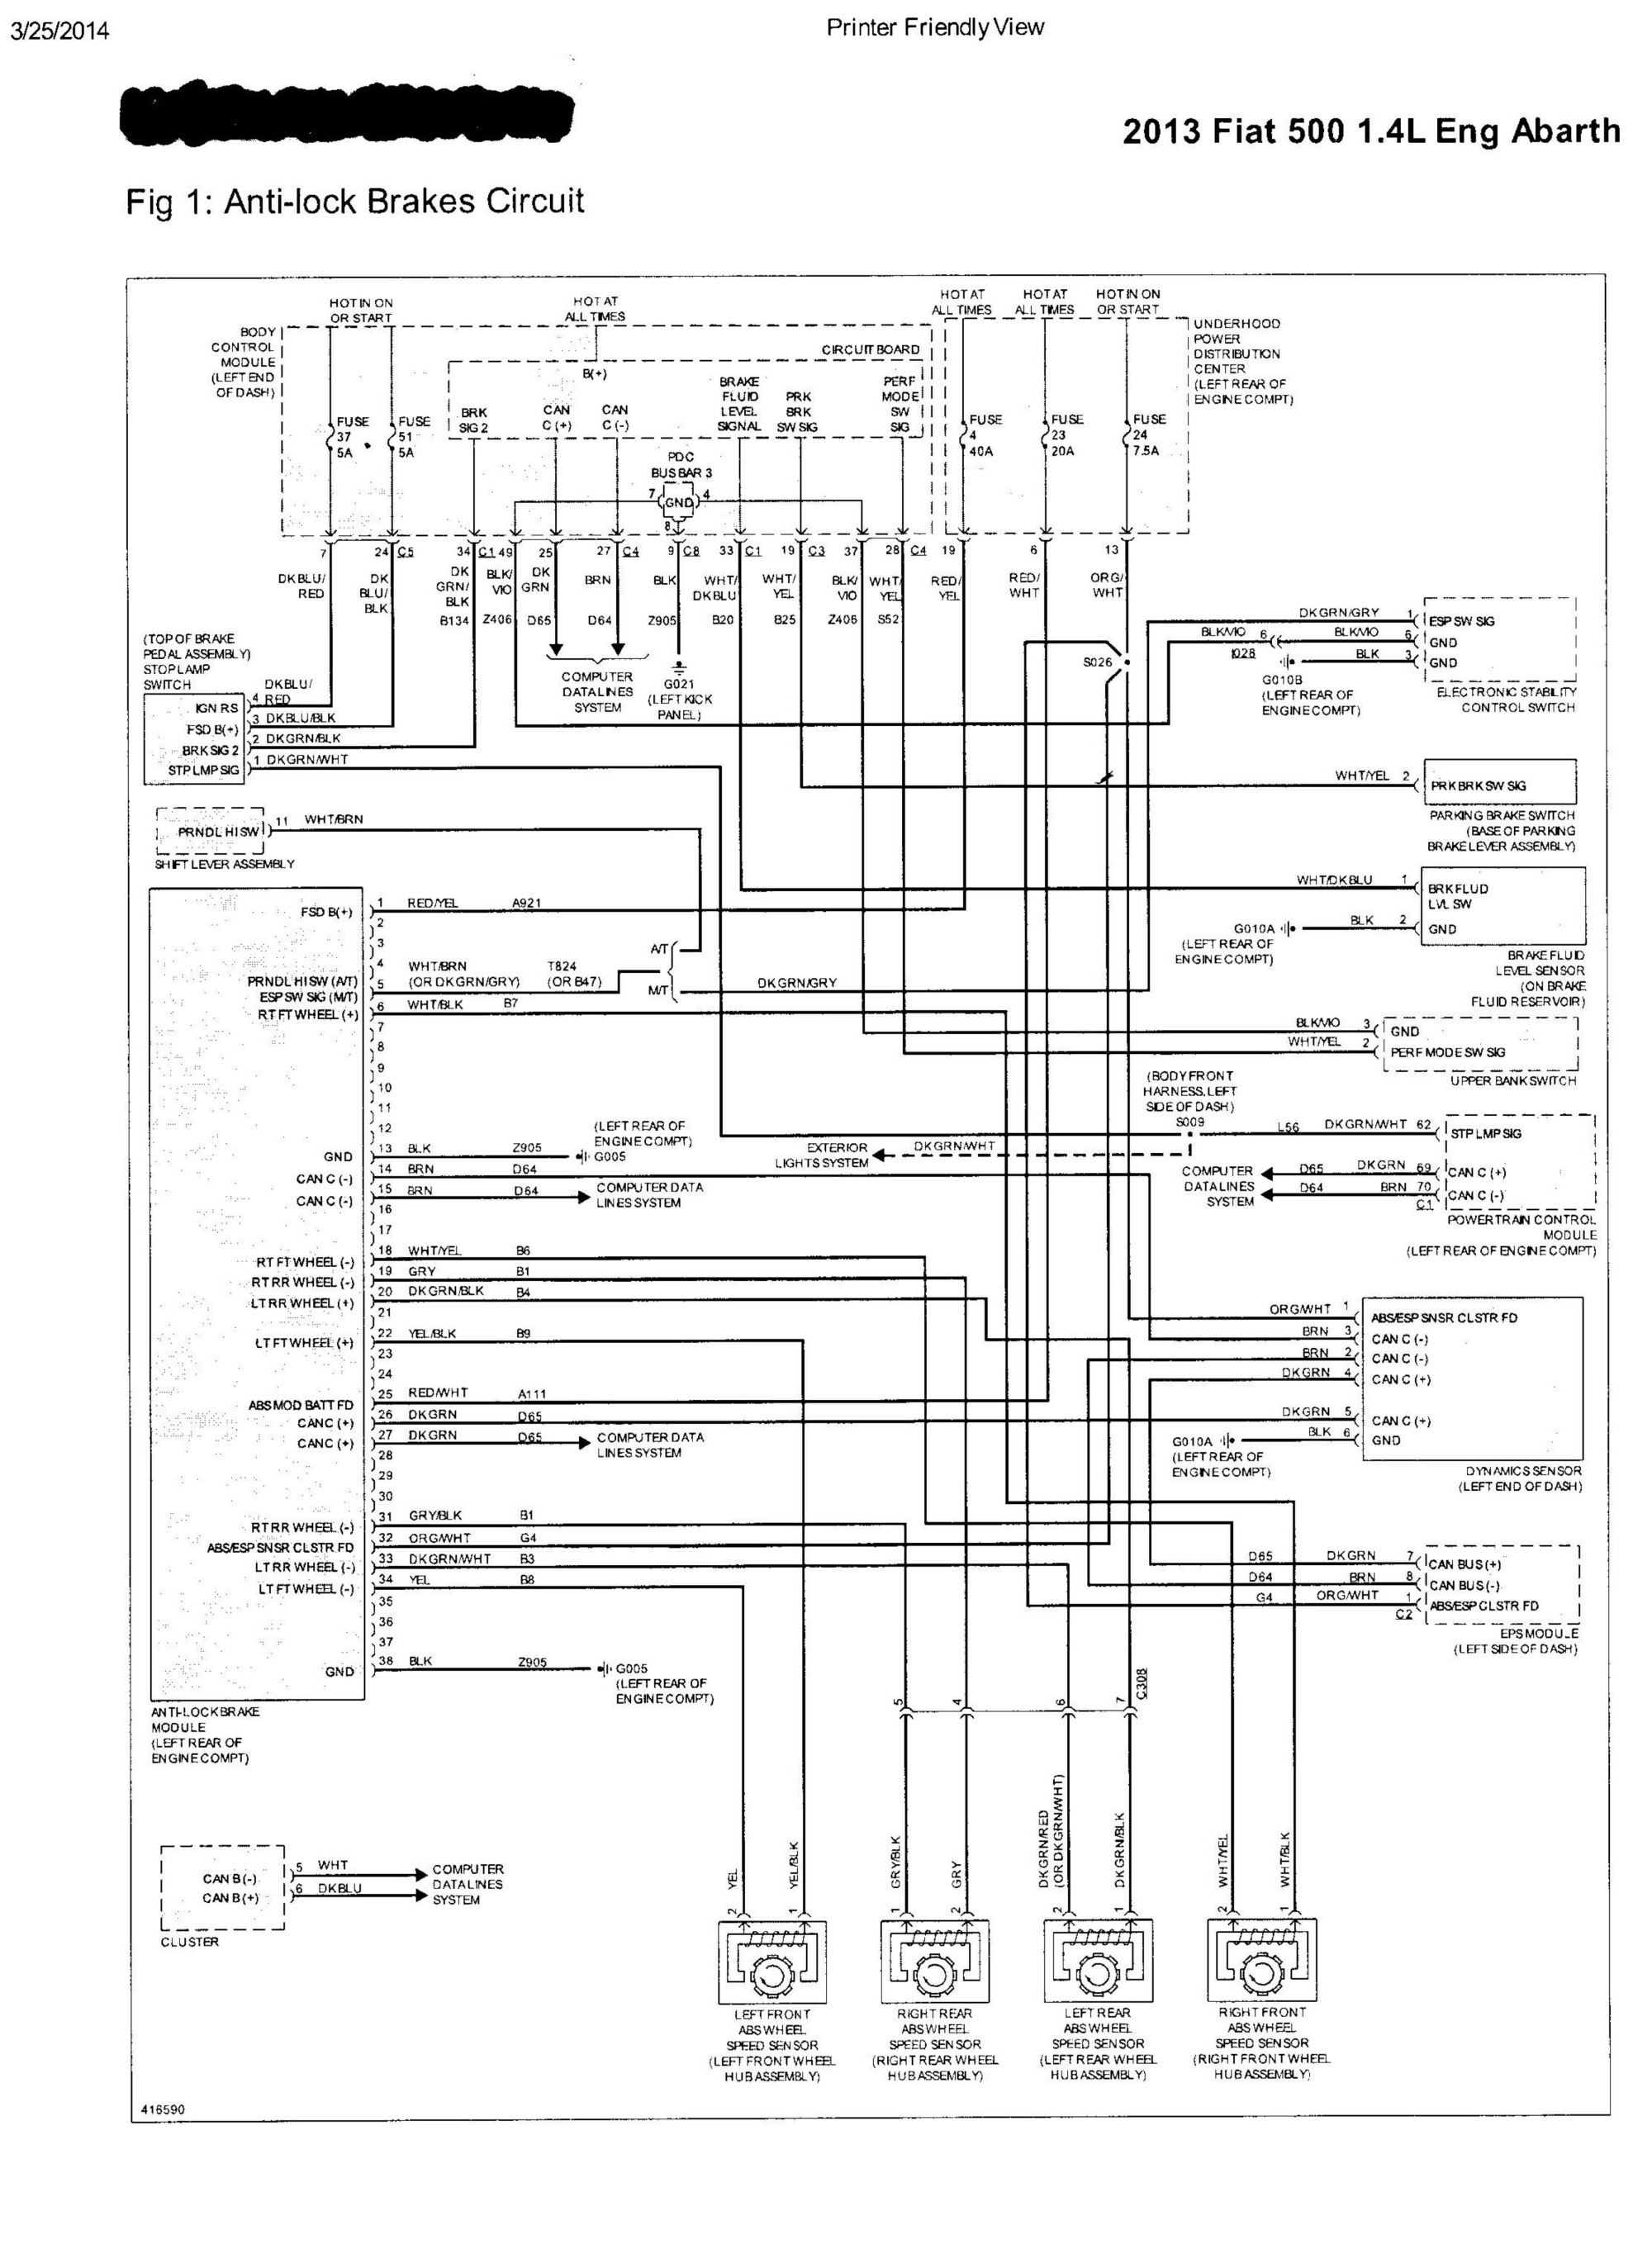 hight resolution of see our other fiat 500 manuals abarth 500 2013 misc documents wiring diagrams